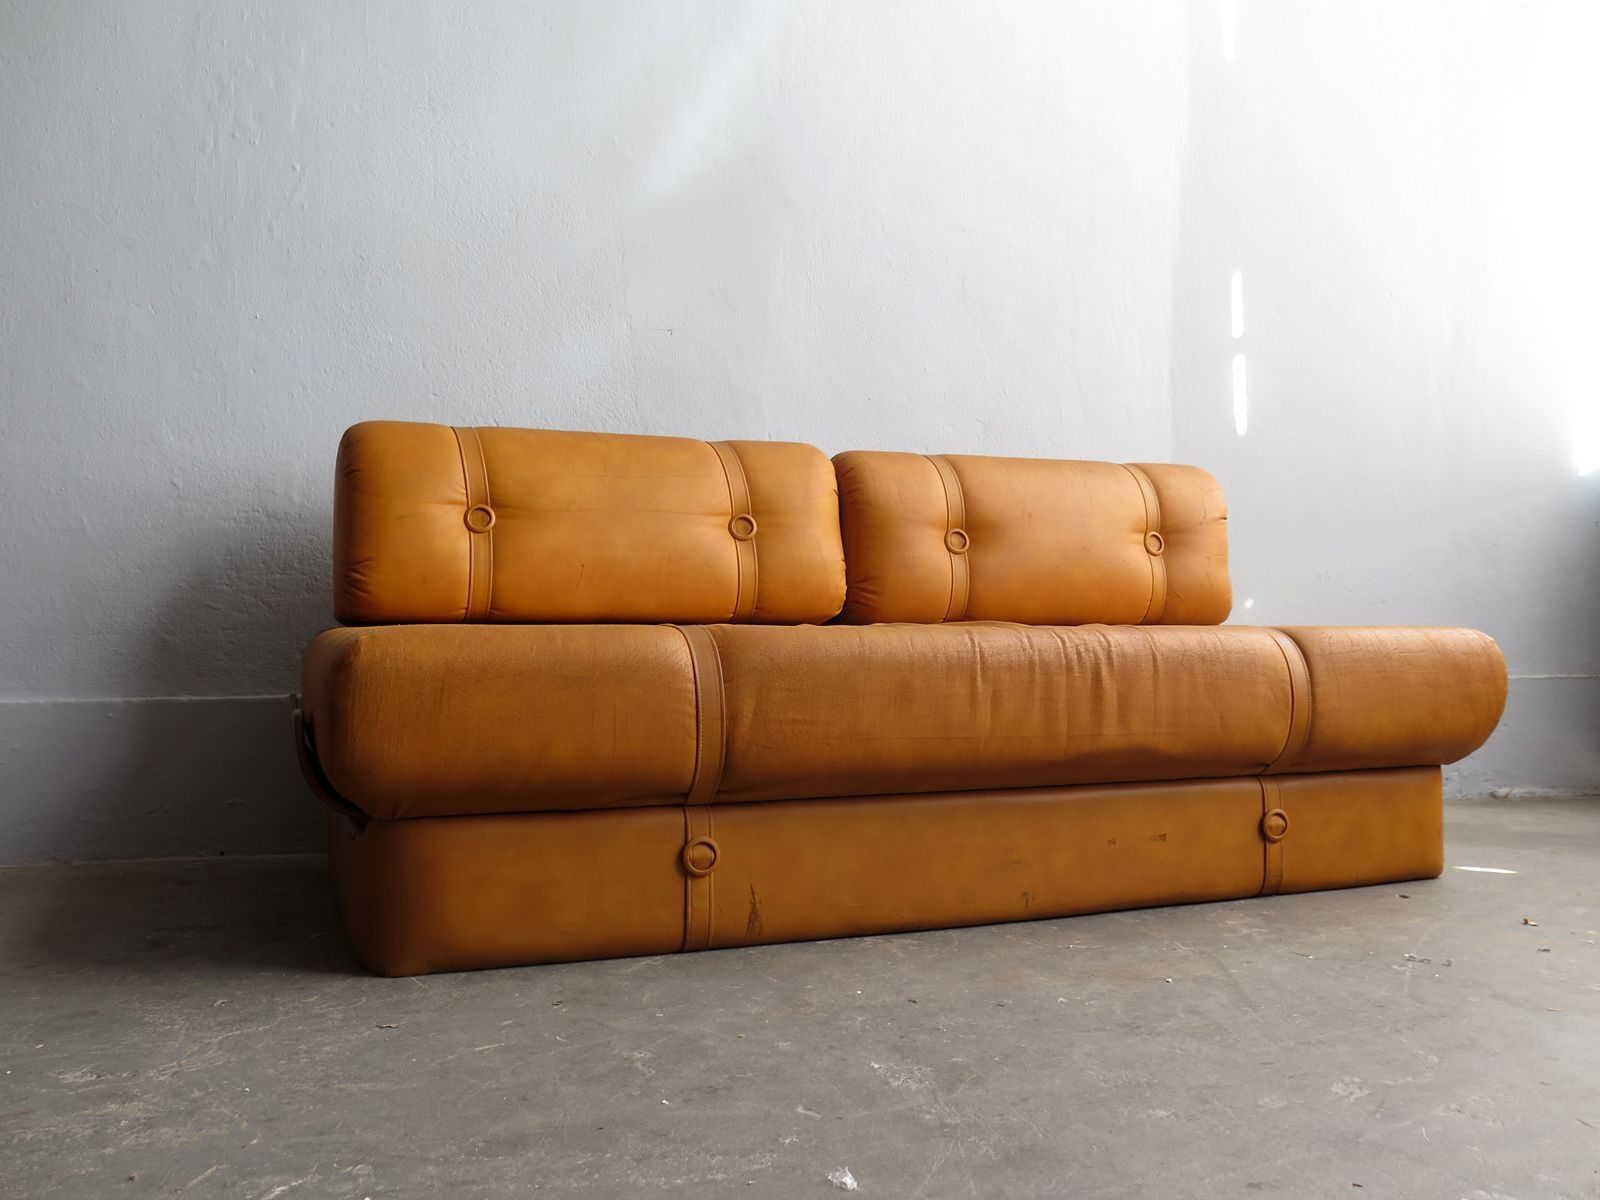 Vintage Faux Leather Sofa Bed 6. $1,842.00. Price Per Piece